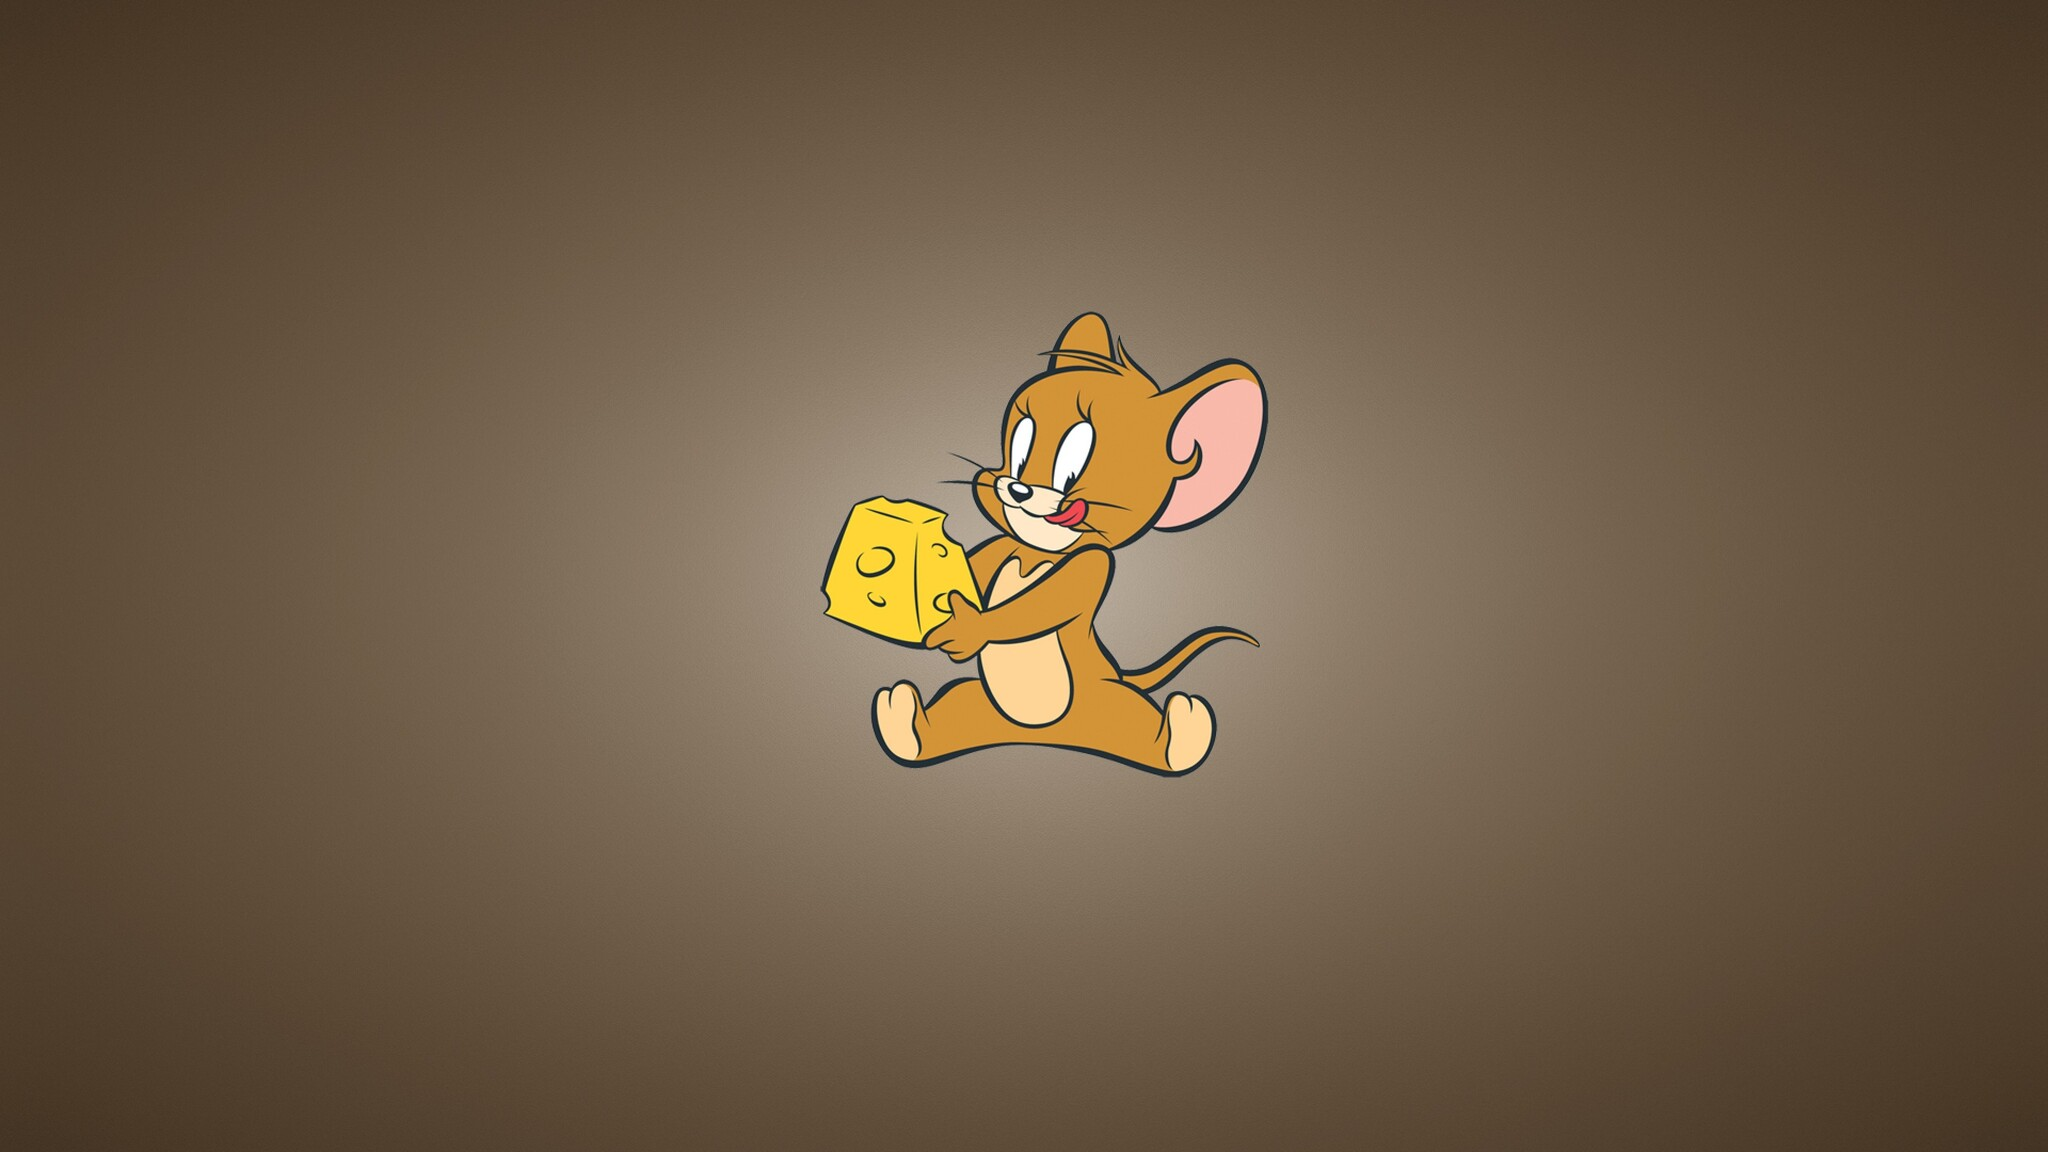 2048x1152 Tom and Jerry 2048x1152 Resolution HD 4k ...